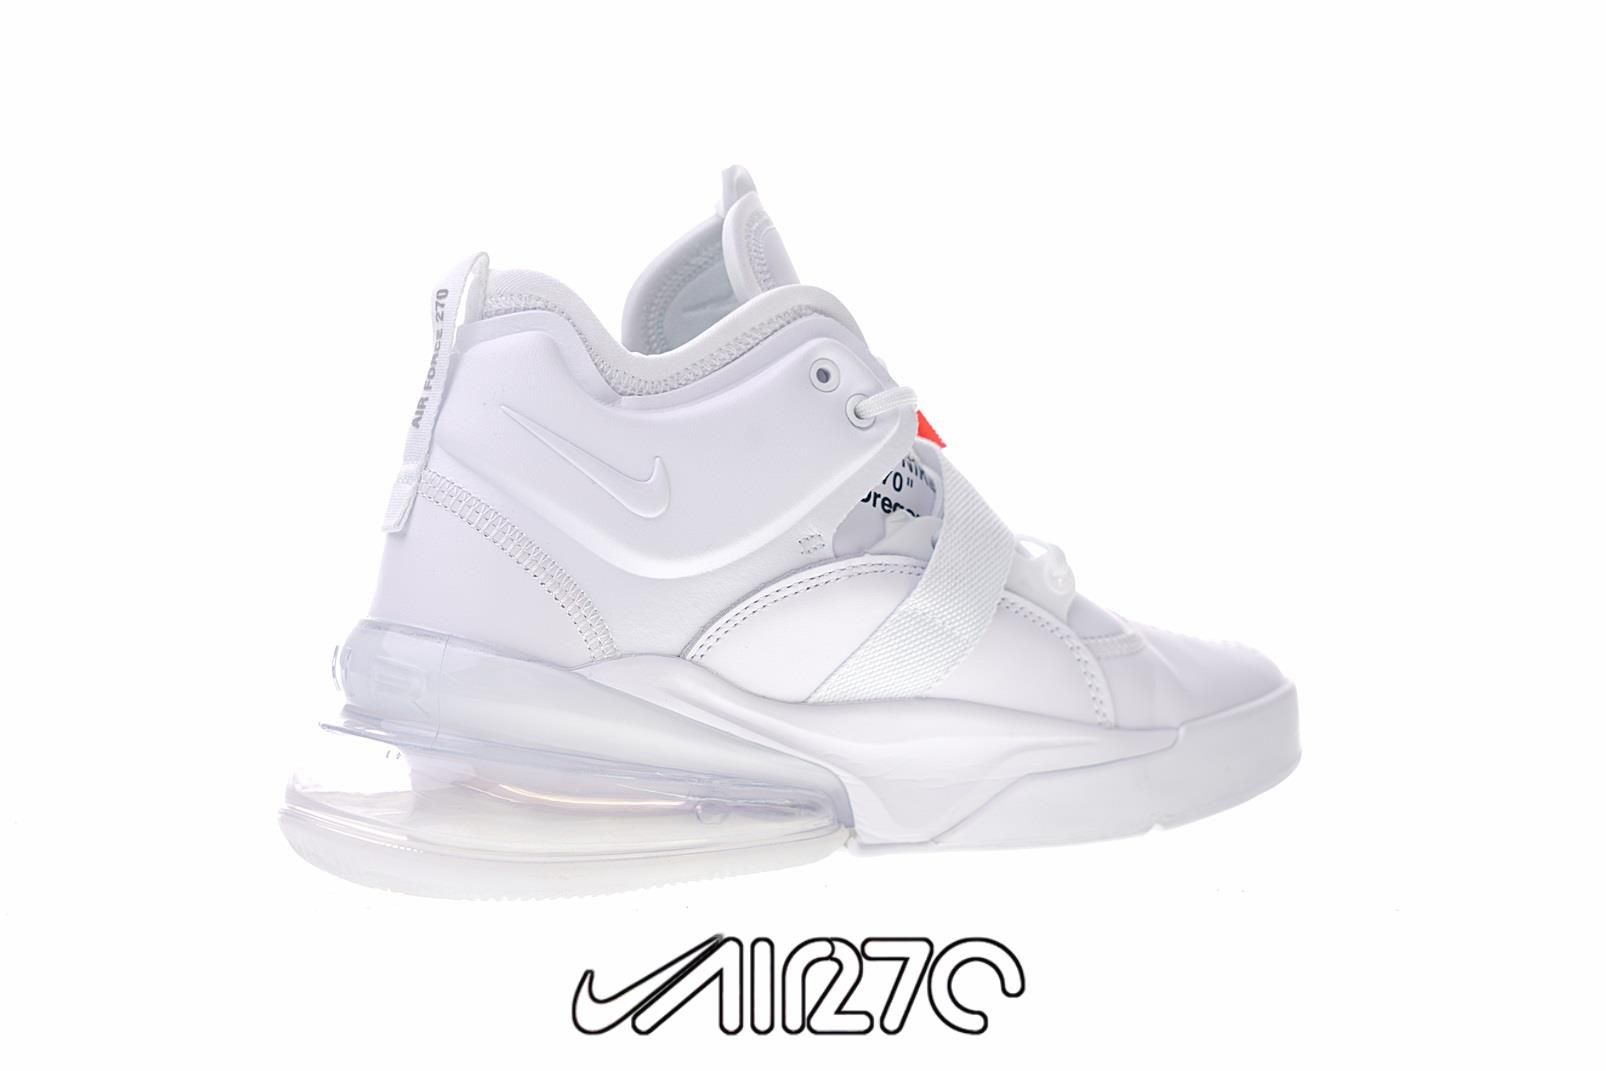 new arrival 375e3 c2d82 Custom Nike Air Force 270 x Off-White- White/Orange-Black ...